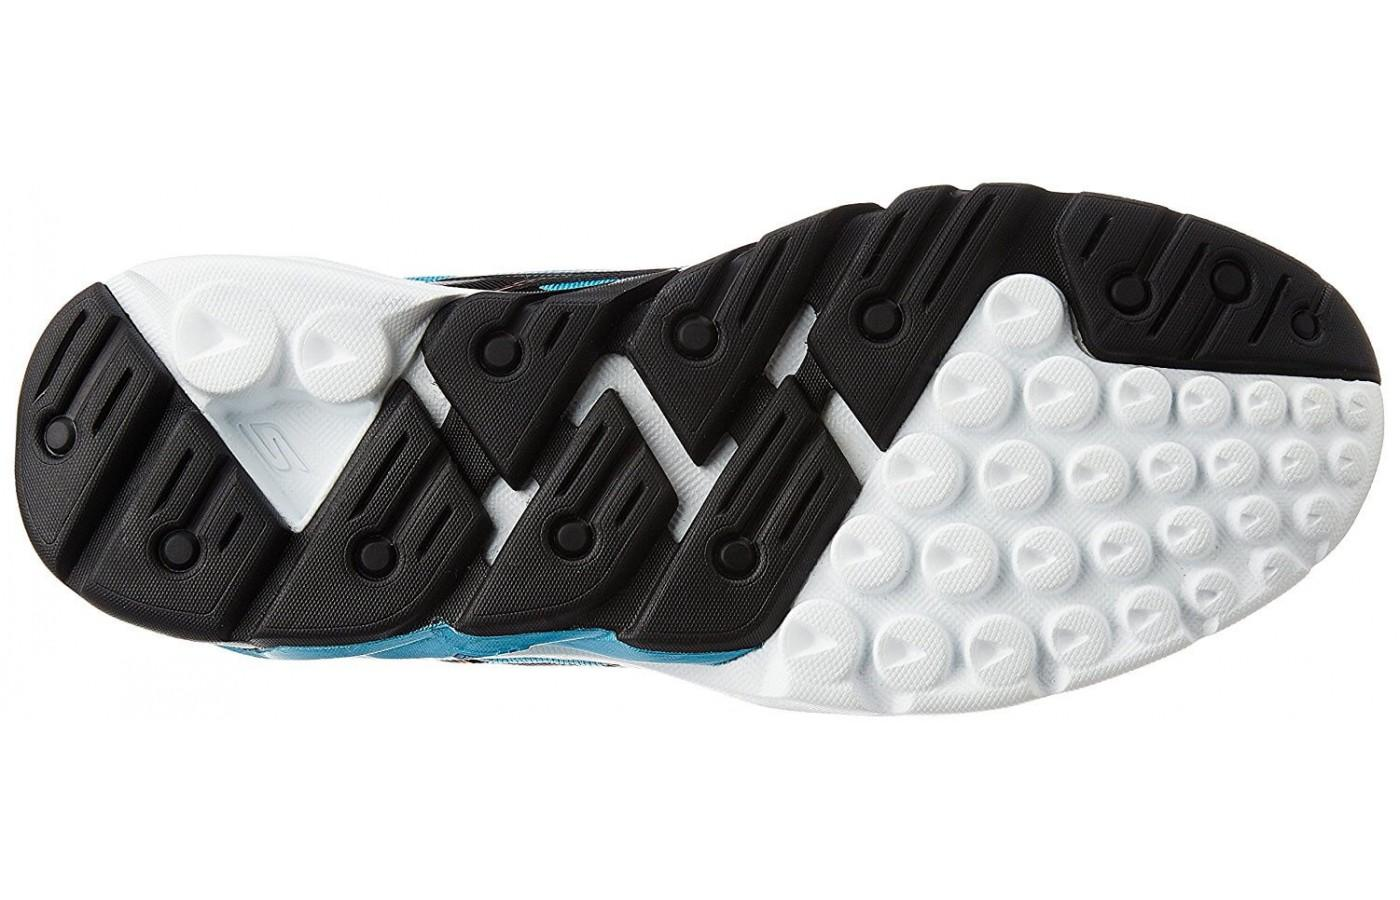 the Skechers GOrun Strada uses GOimpulse sensors for improved flexibility and responsiveness